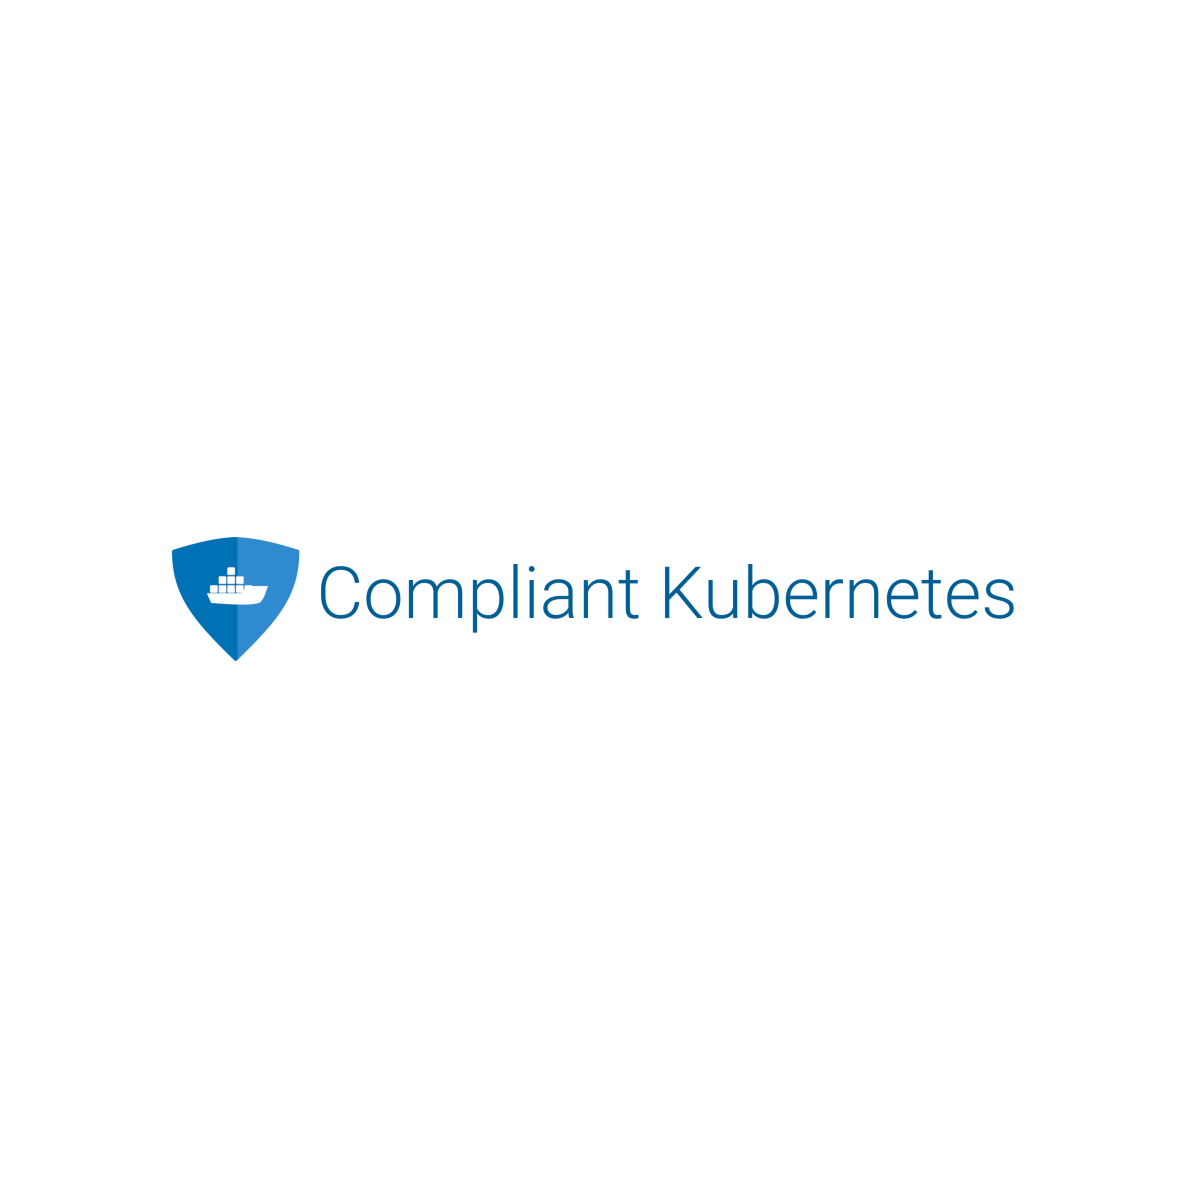 Elastisys Announces General Availability of Compliant Kubernetes as Open Source